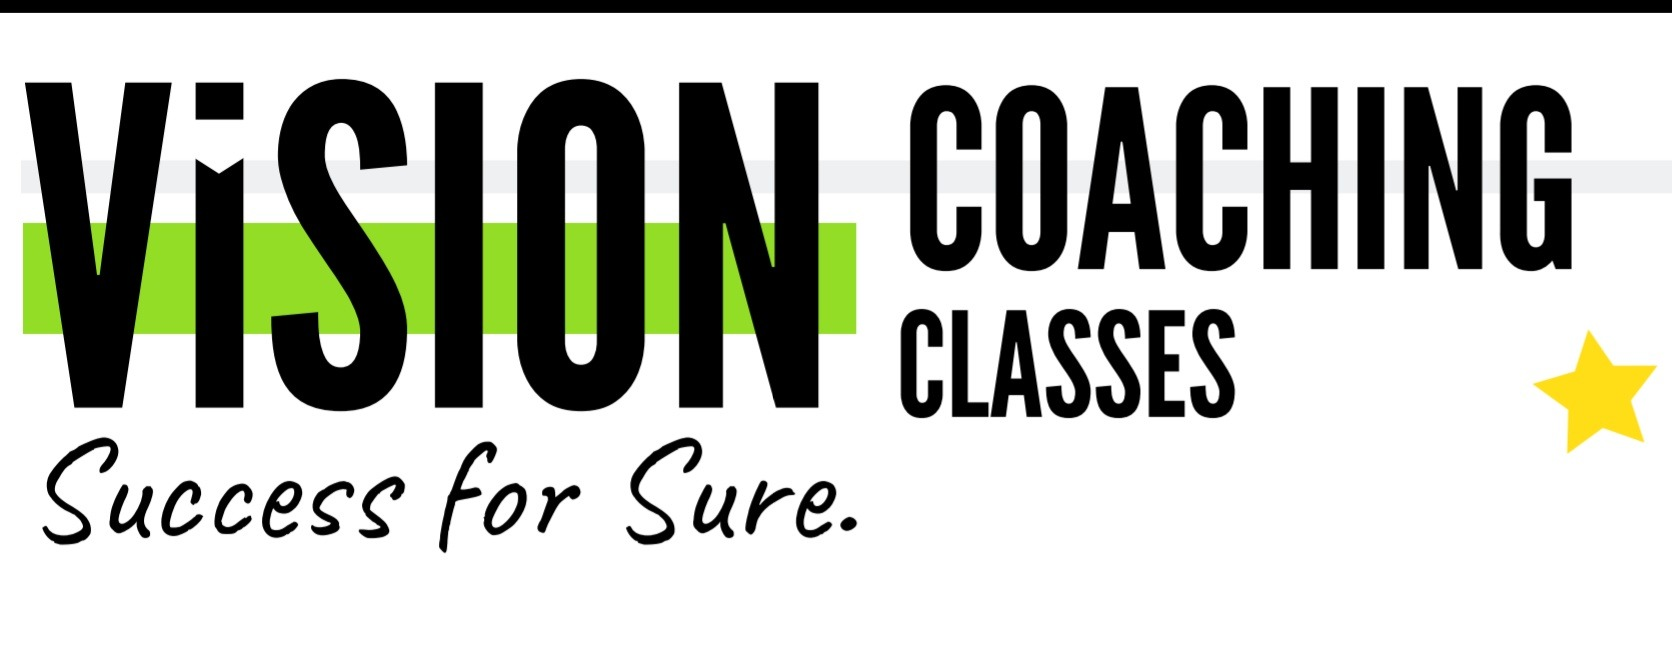 Vision coaching classes